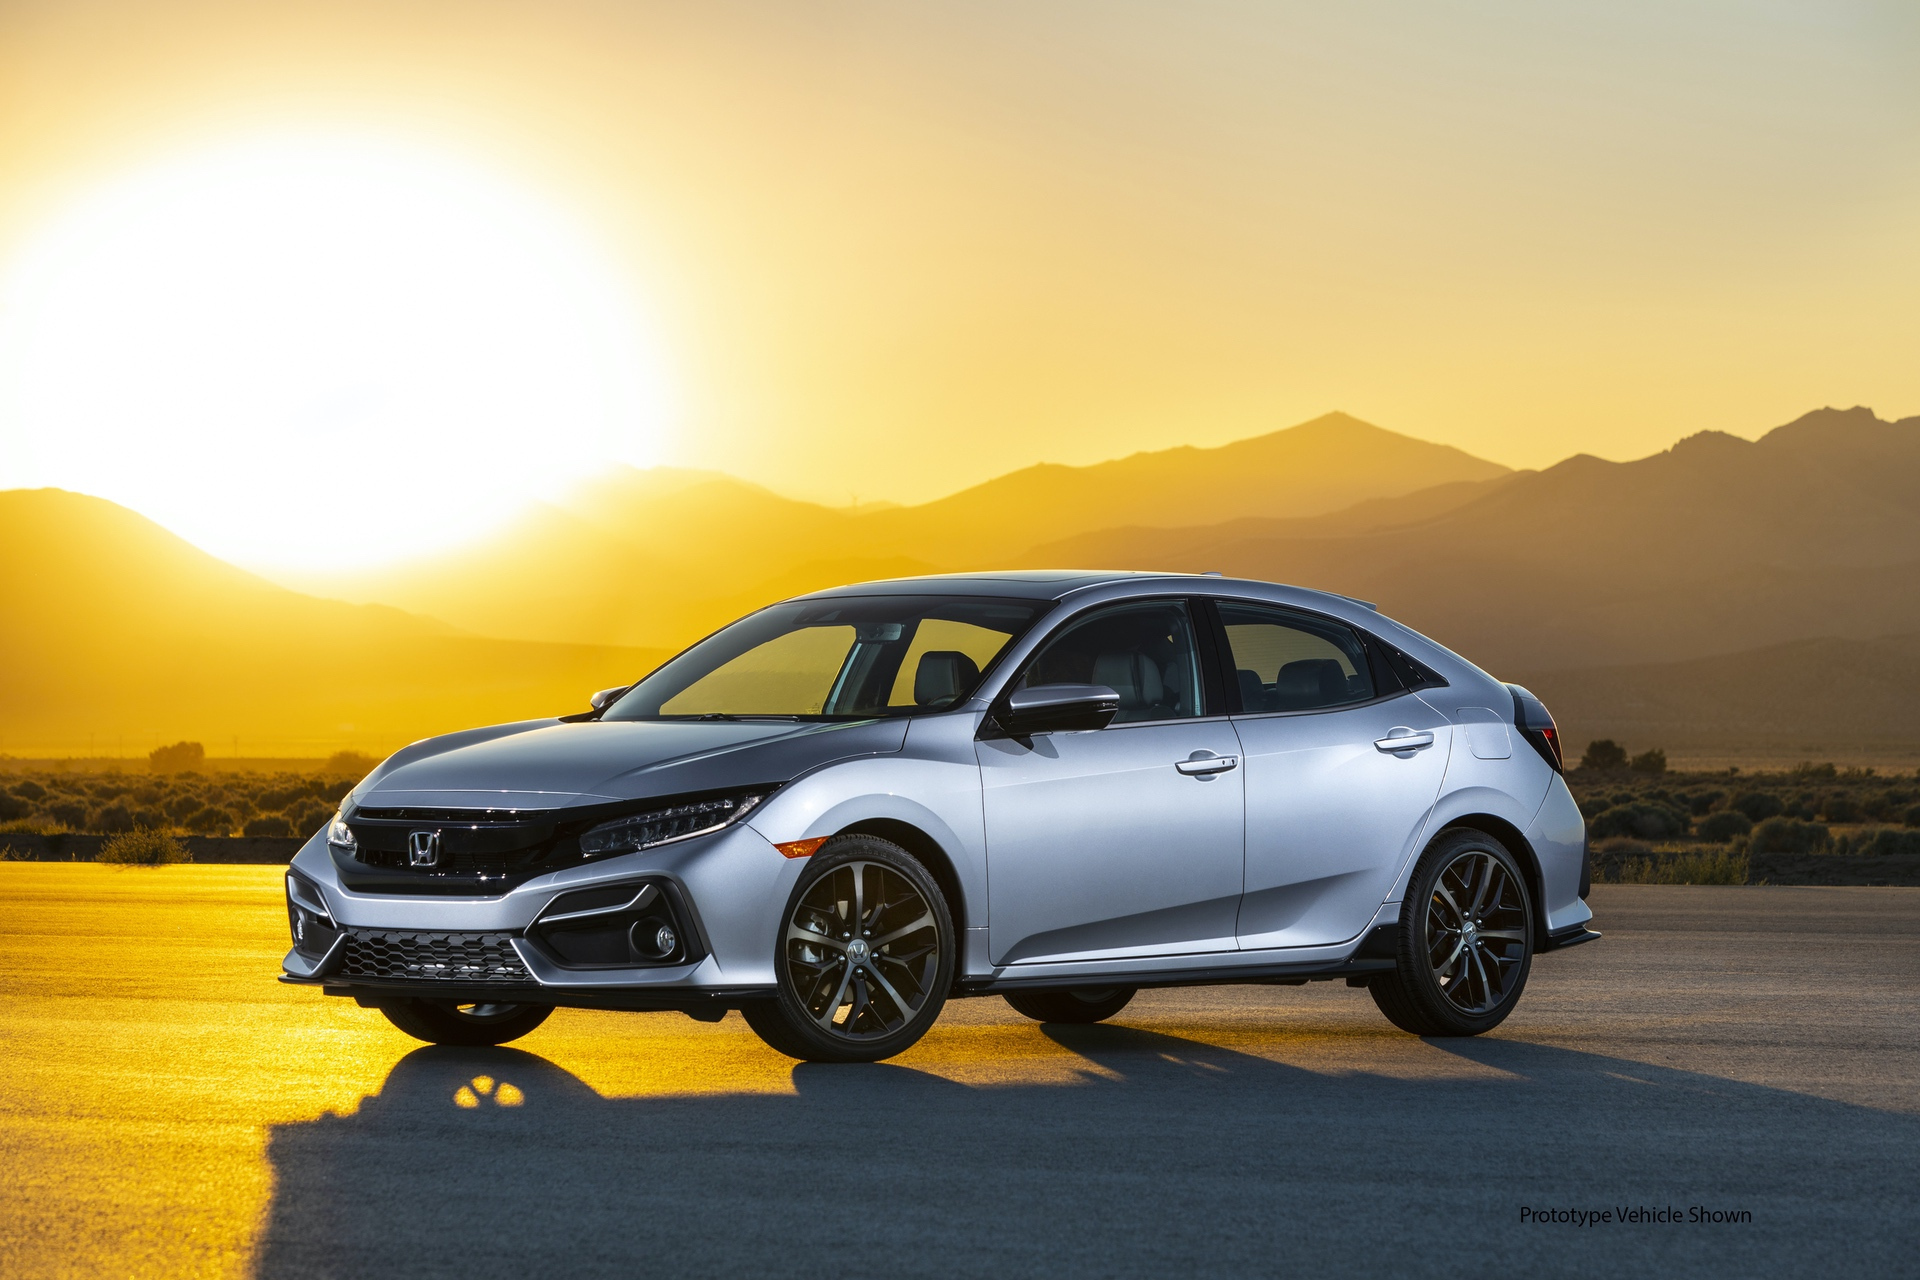 Honda_Civic_facelift_US-spec_0000